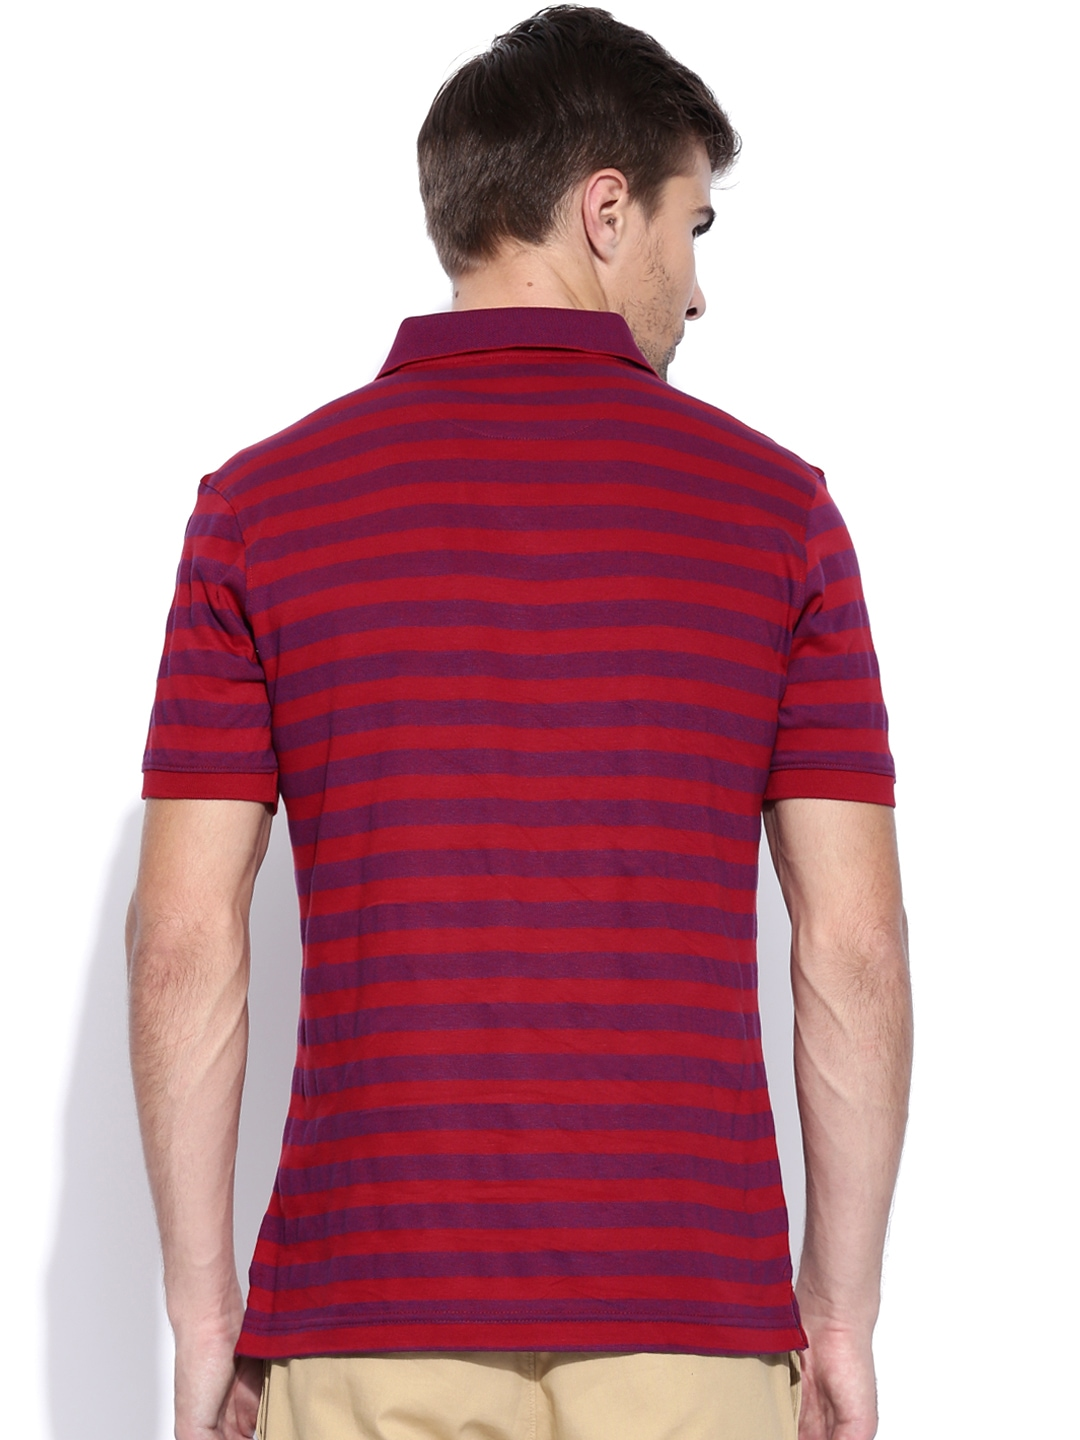 Myntra van heusen men red purple striped polo t shirt for Purple and black striped t shirt